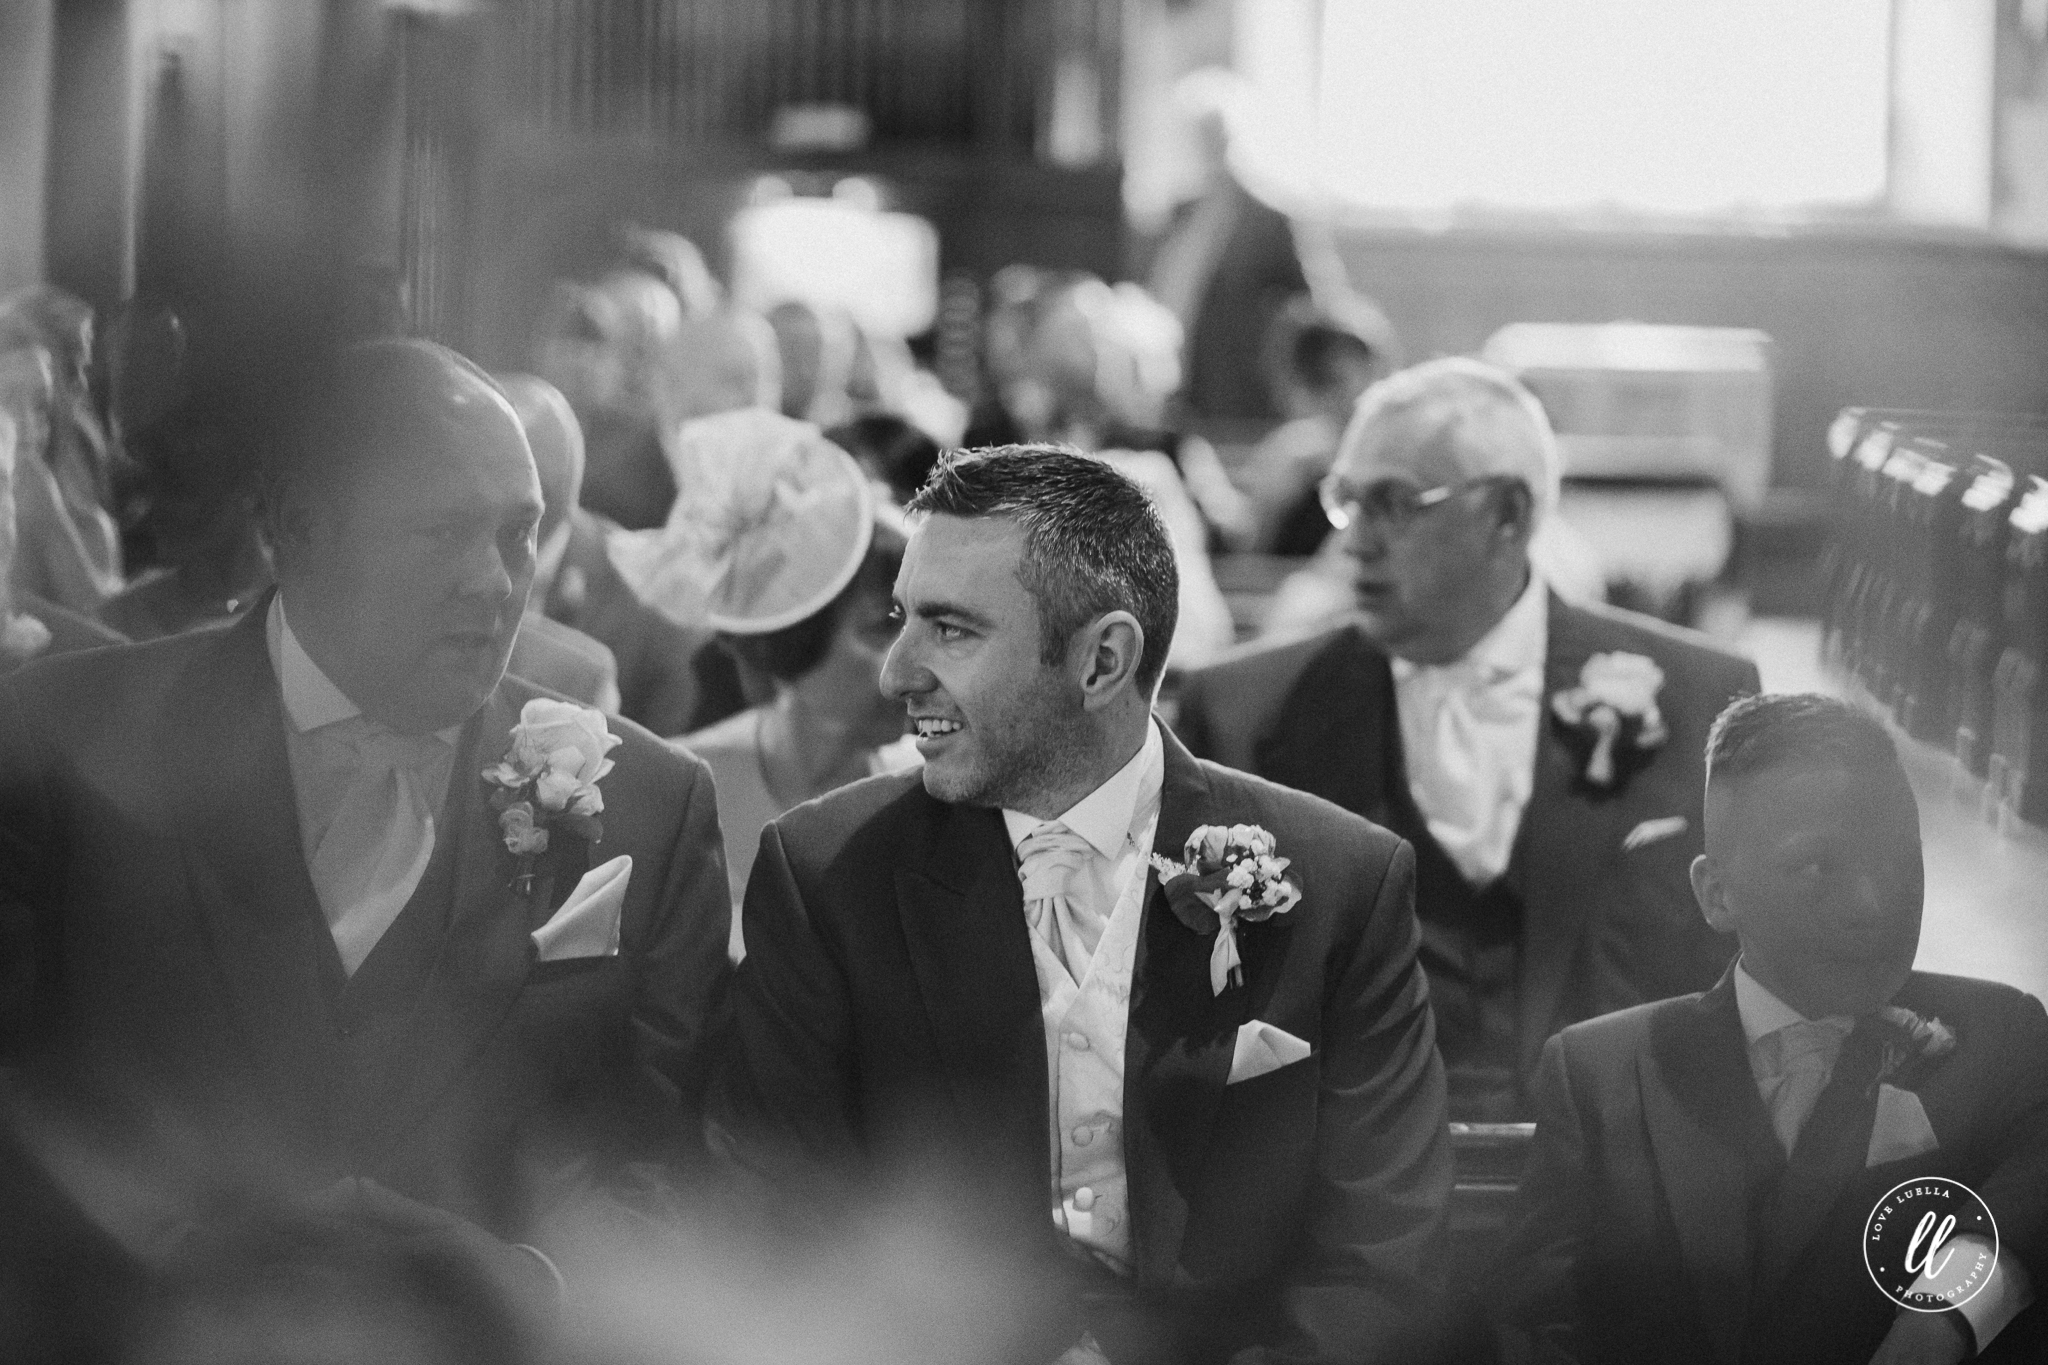 The groom and his men waiting patiently for Vicky to make an entrance